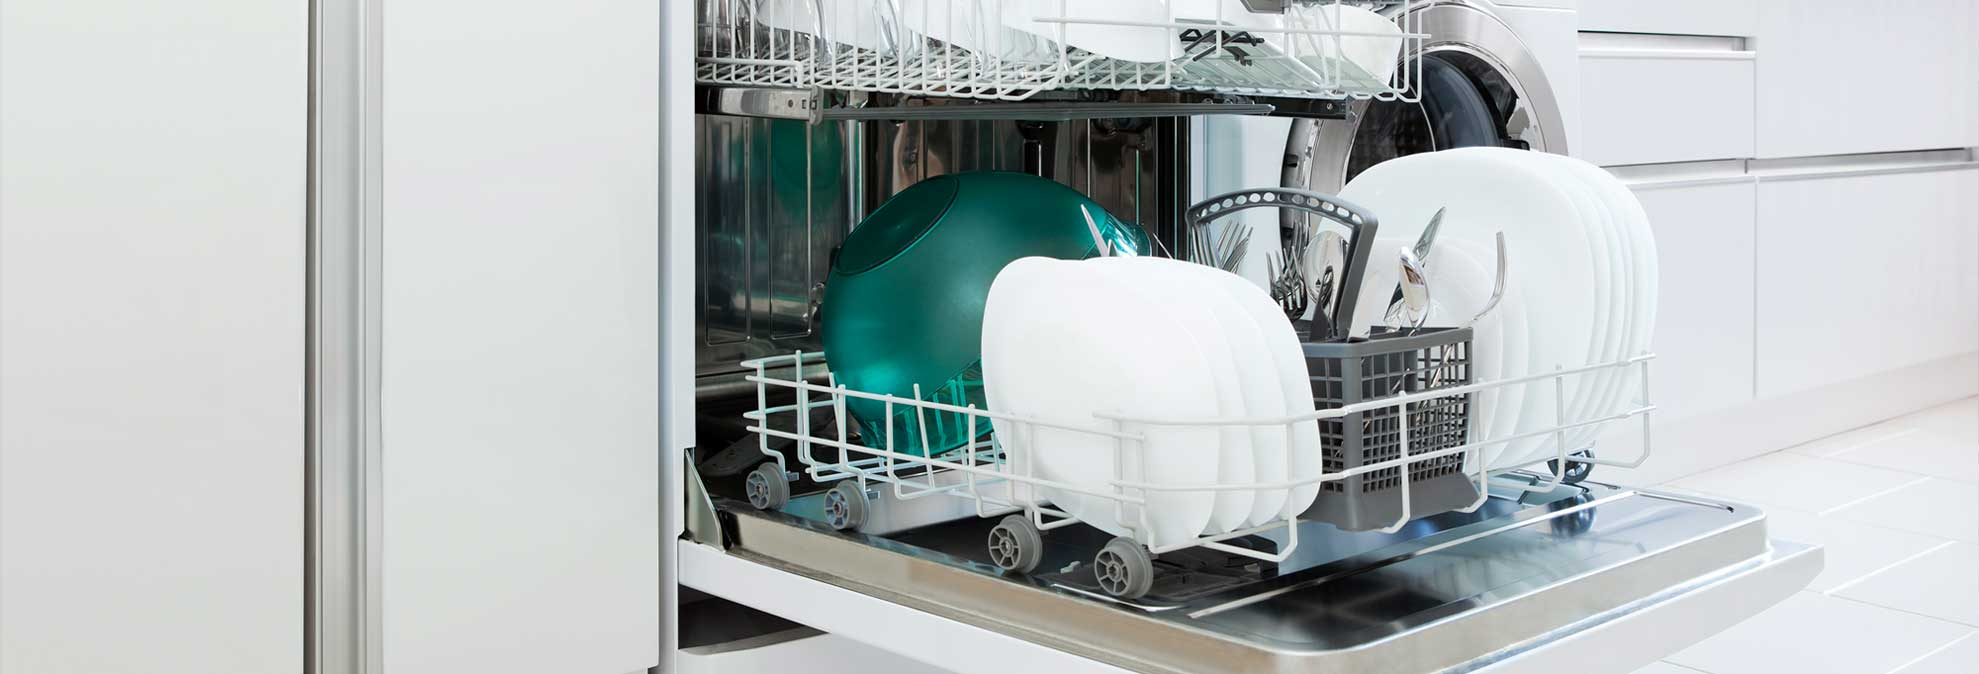 18 Portable Dishwasher Canada Best Dishwasher Buying Guide Consumer Reports